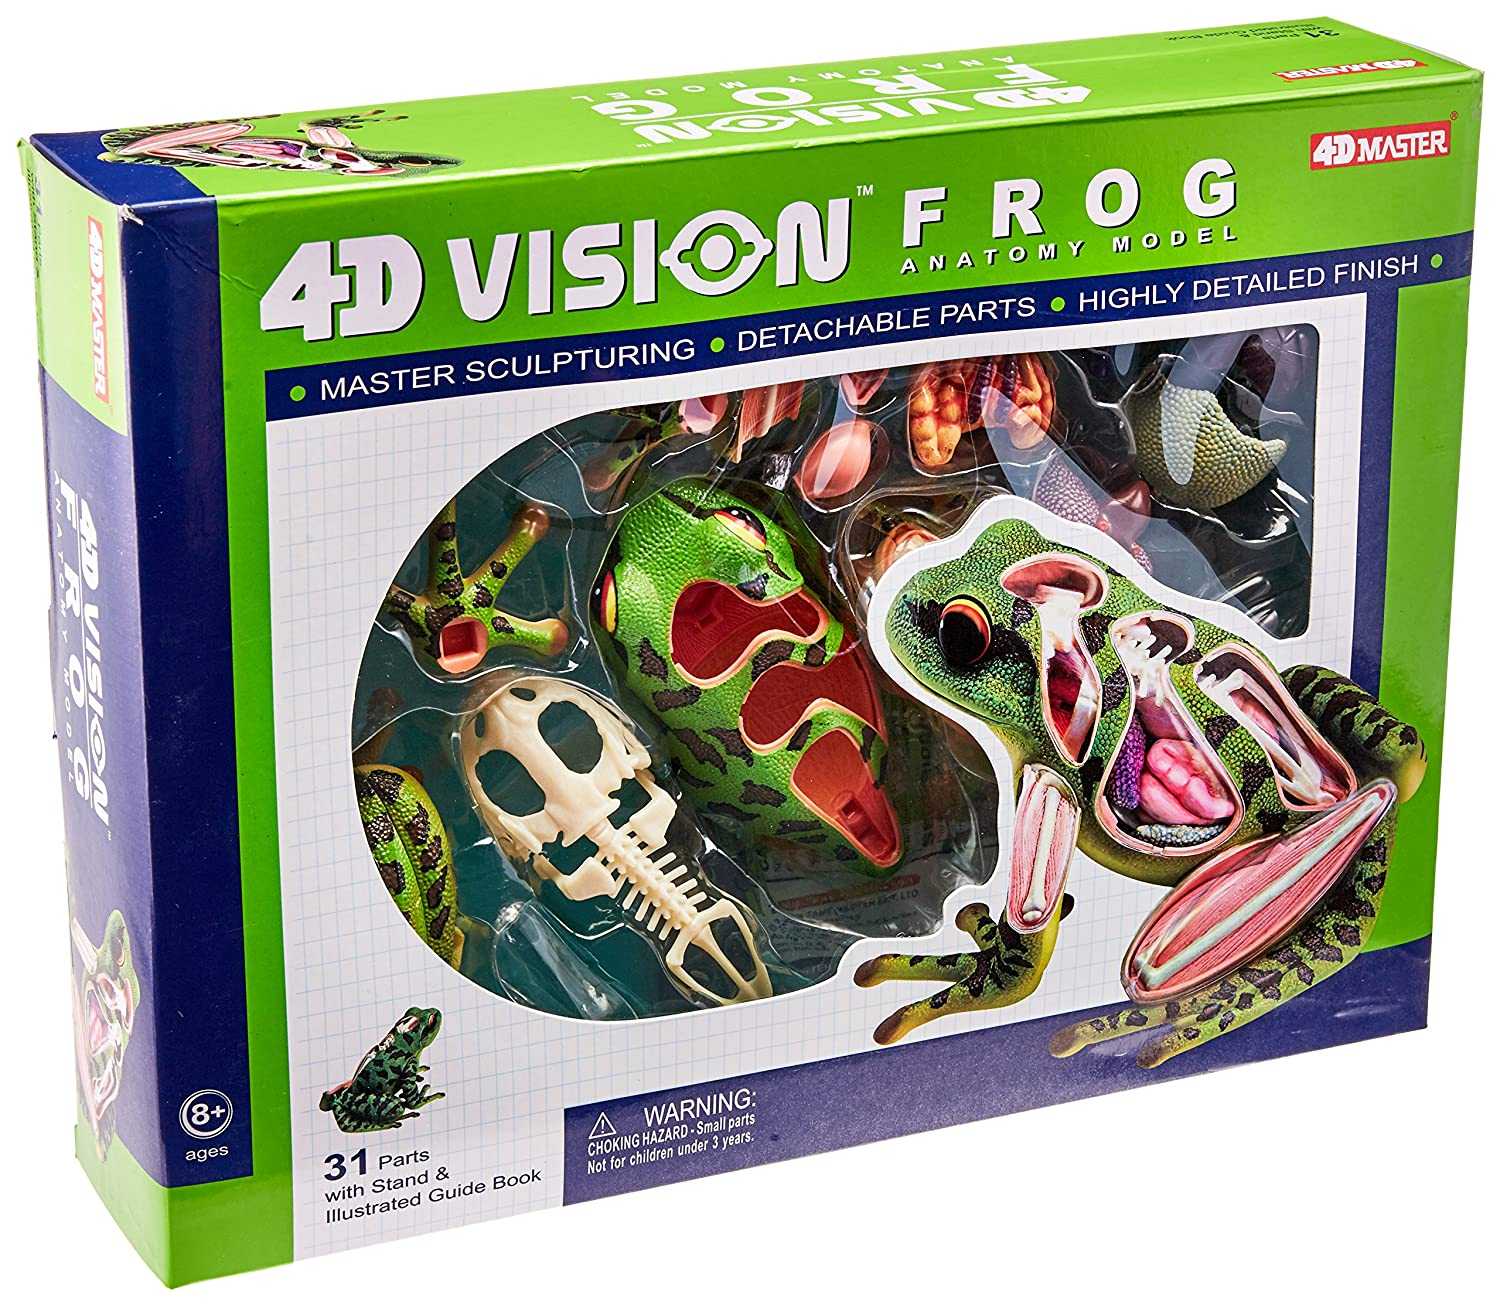 Amazon.com: 4D Vision Frog Anatomy Model: Toys & Games